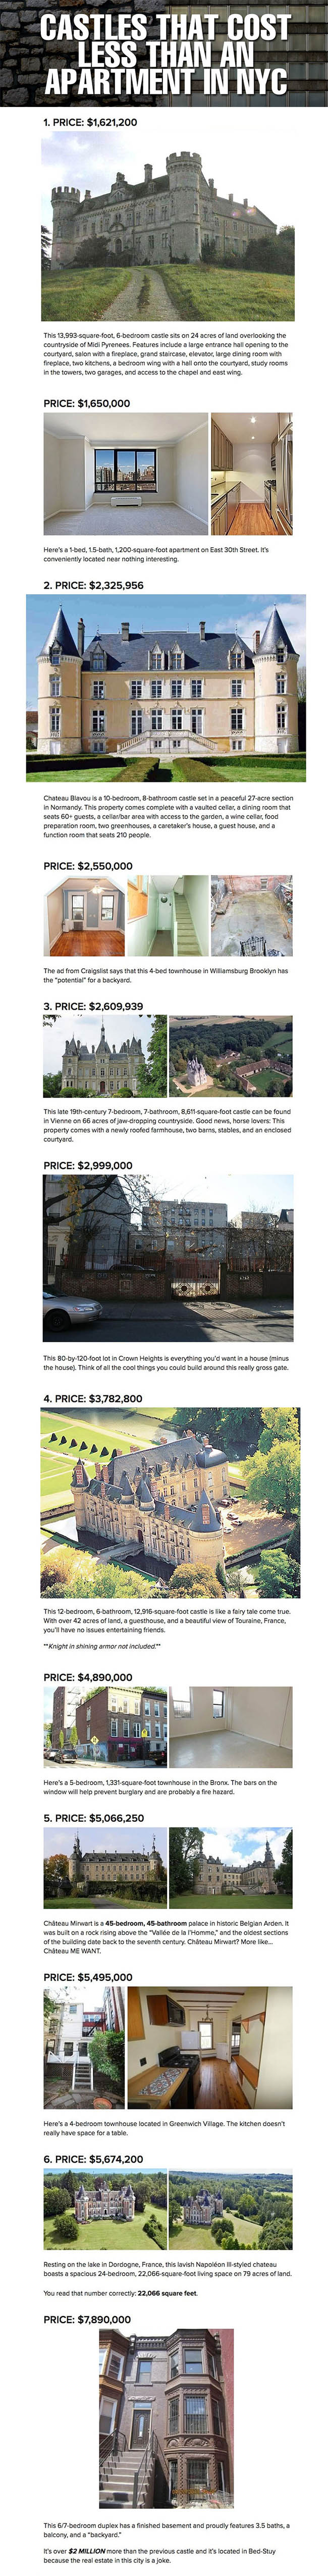 Castles That Cost Less Than An Apartment In NYC NewYork Nyc - 6 castles less expensive than an apartment in nyc